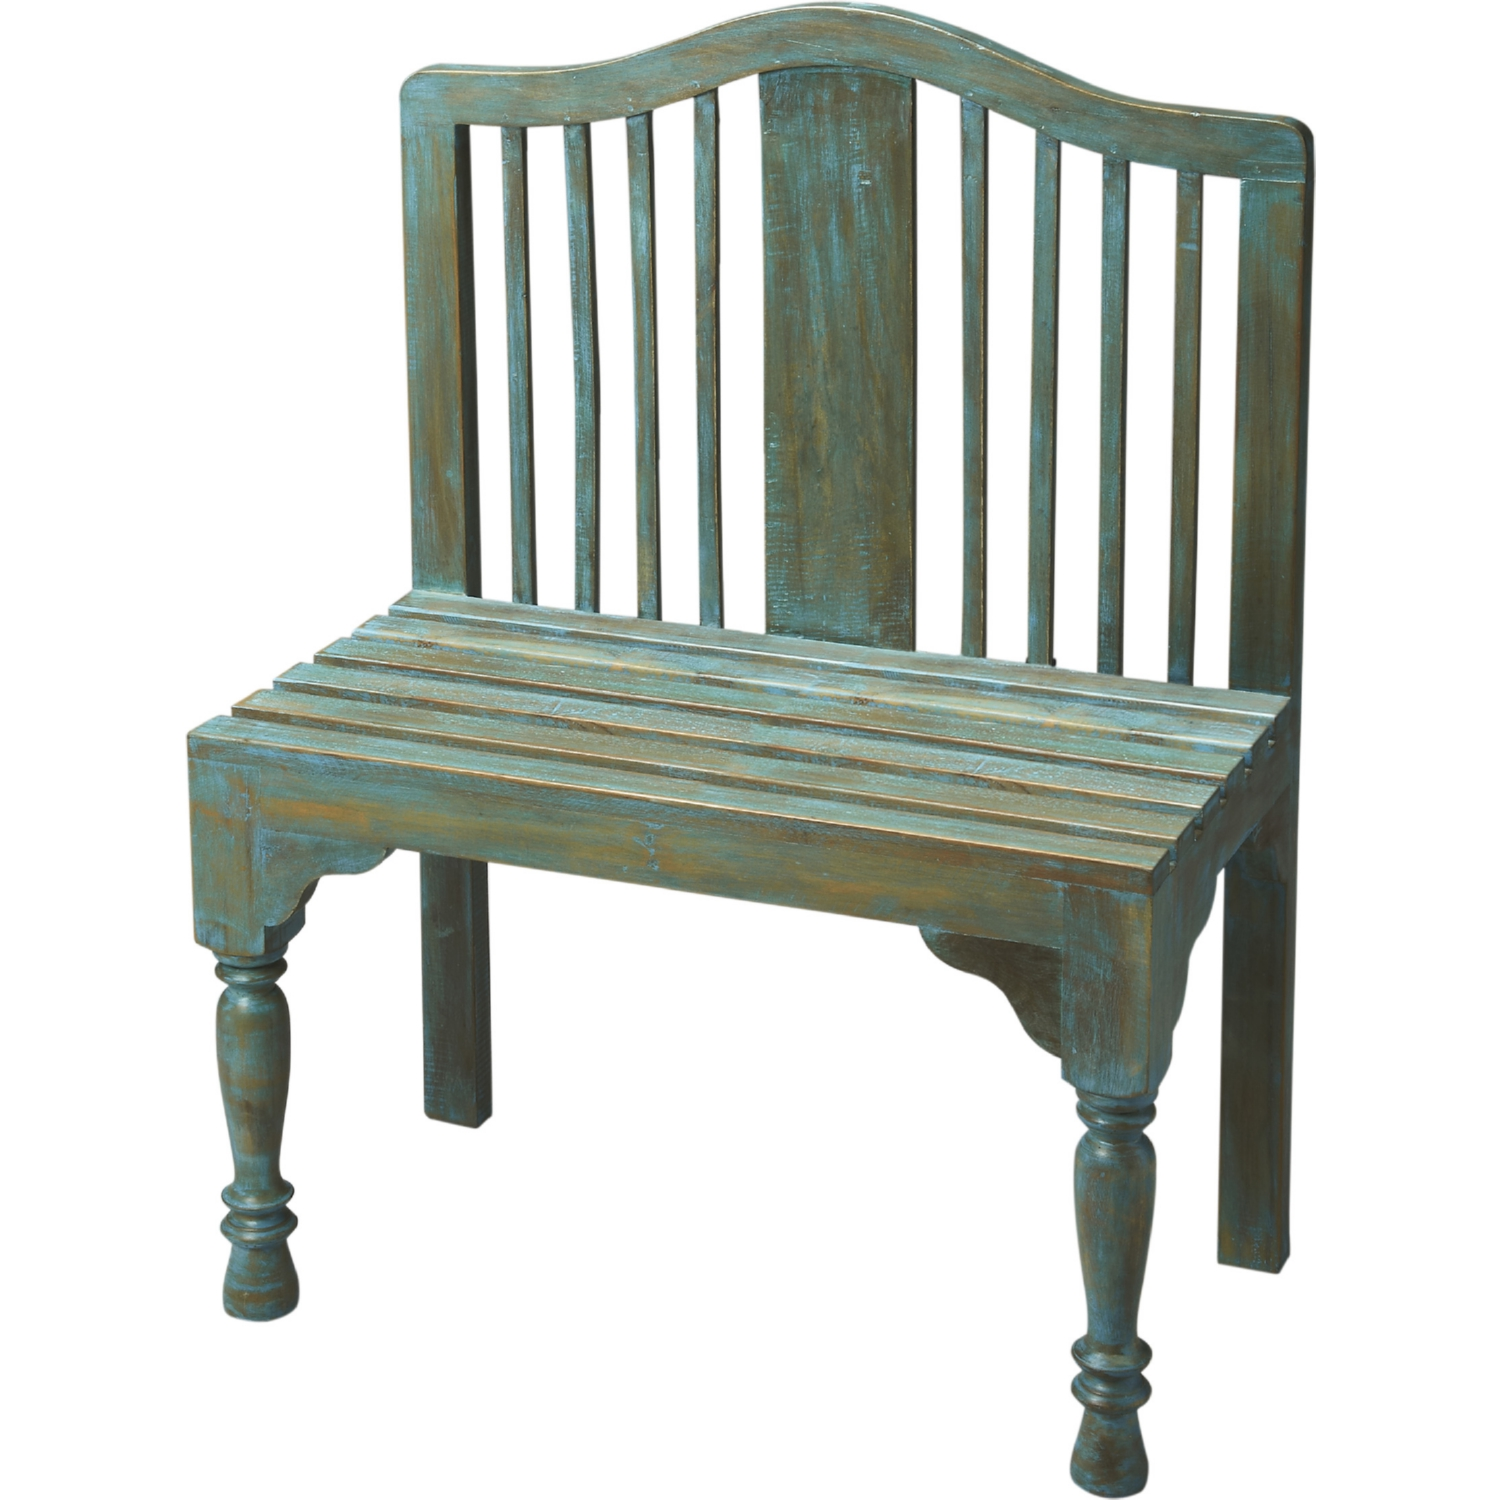 Chloe Foyer Table : Butler specialty roseland blue solid wood bench